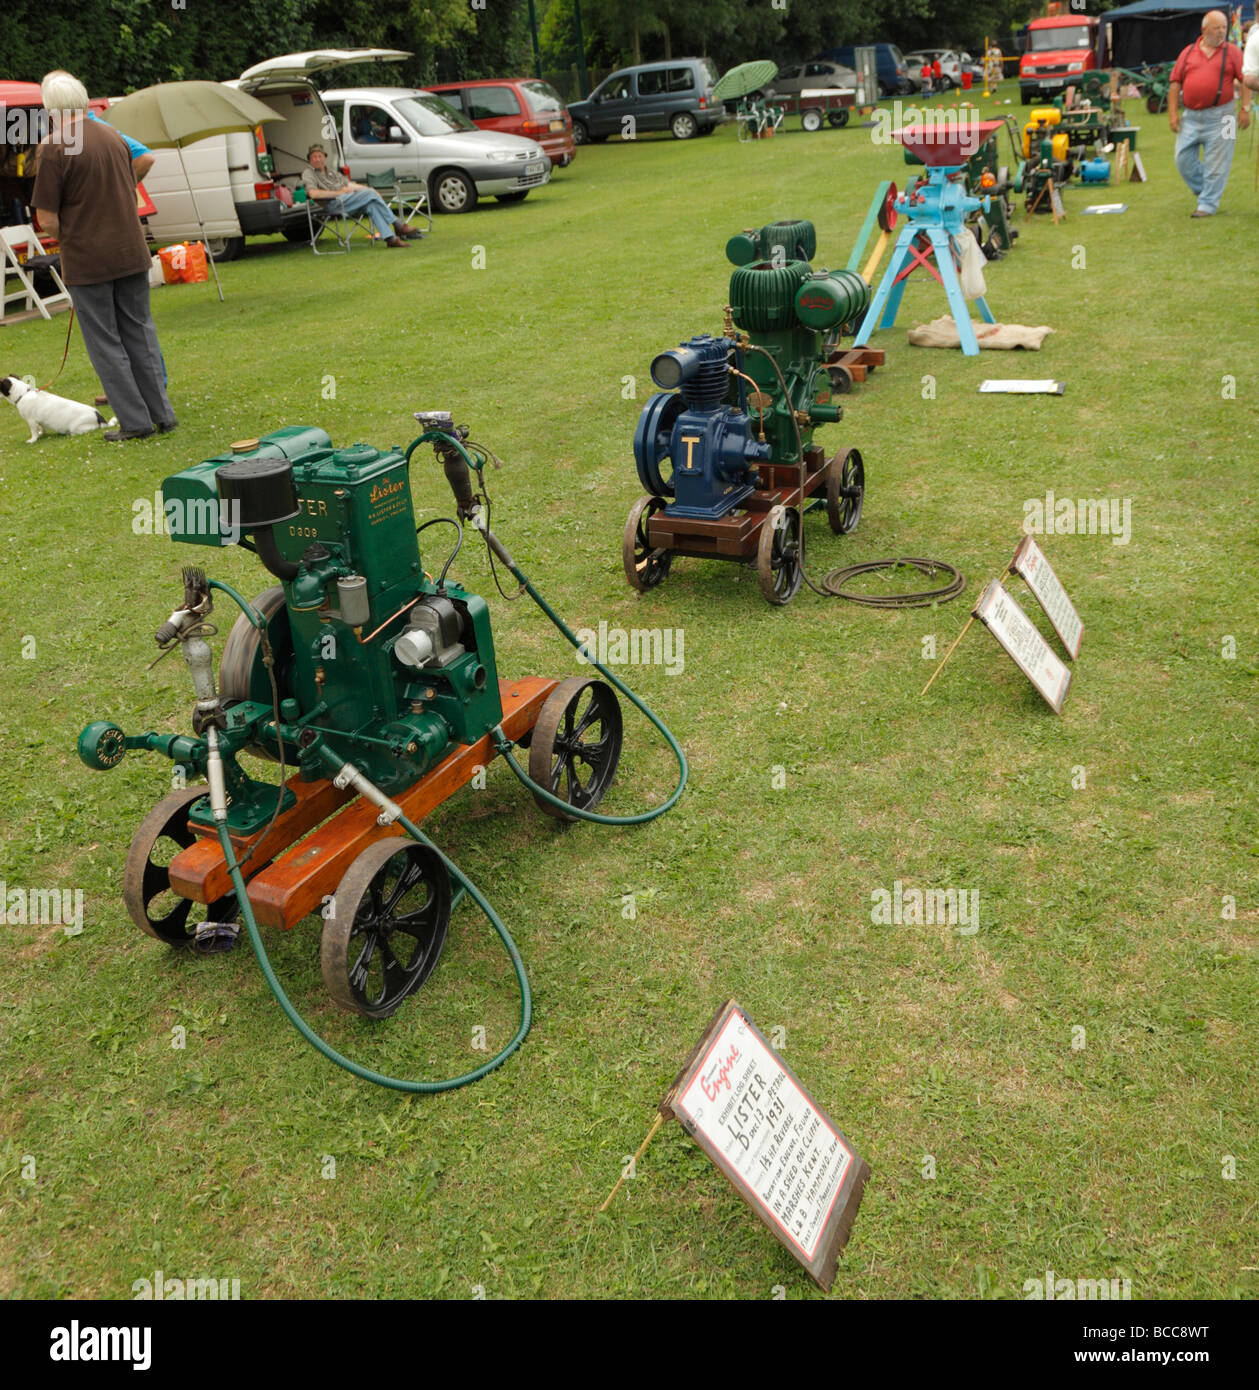 Collection of stationary steam engines. - Stock Image